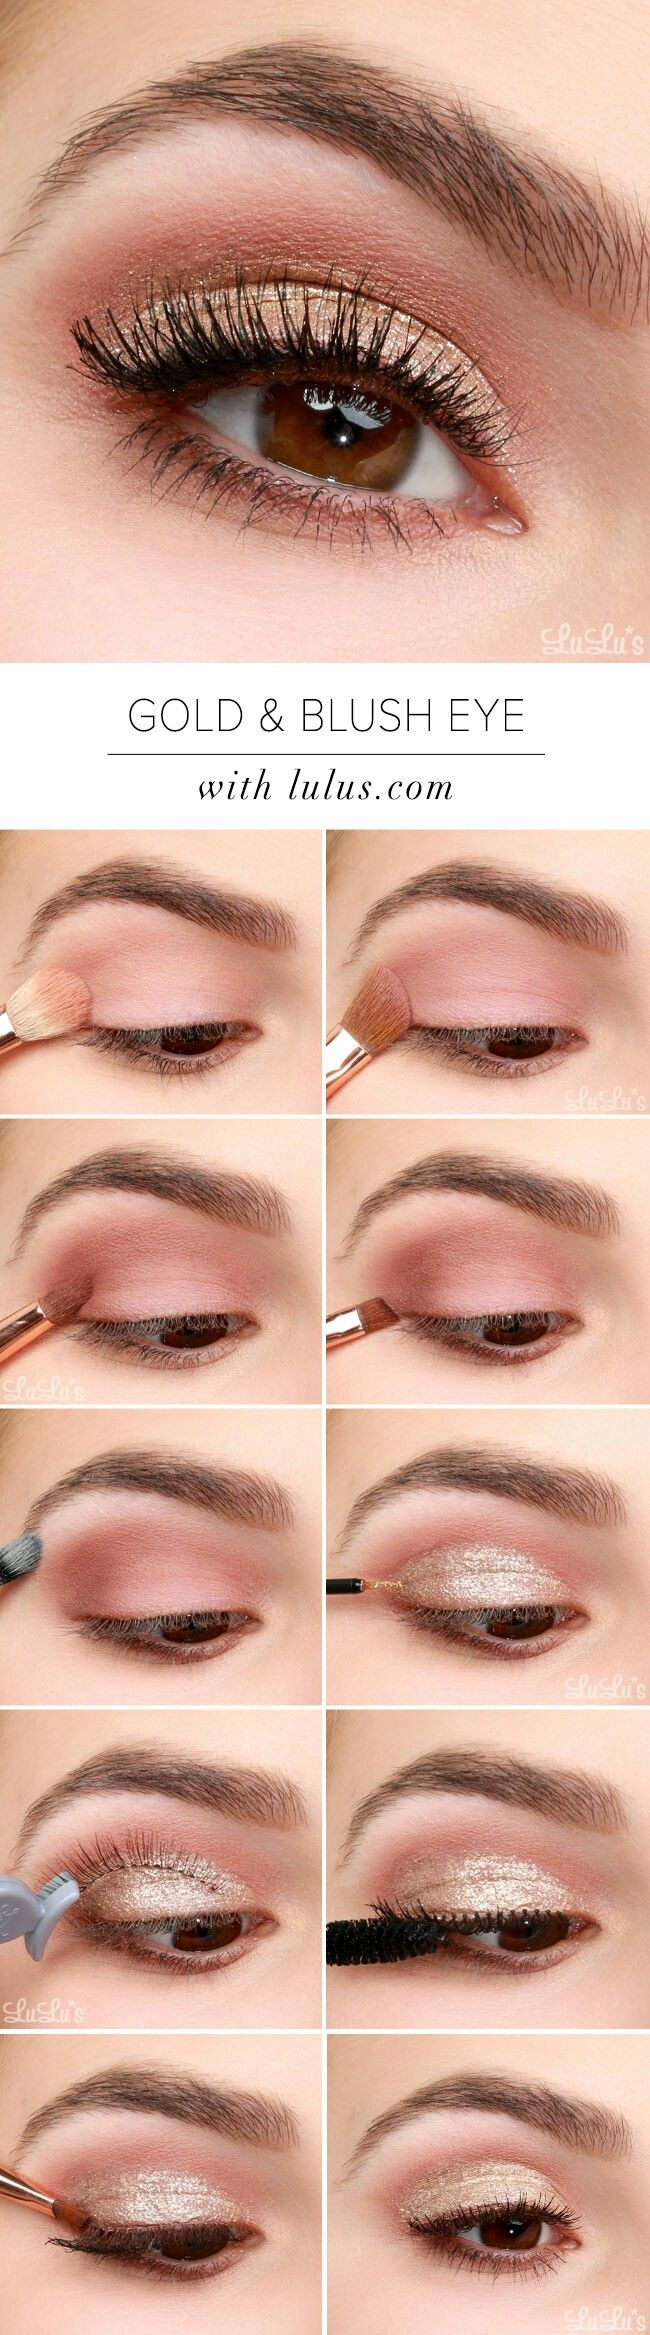 Pin by movsumova on make up | Pinterest | Makeup, Eye and Makeup ideas